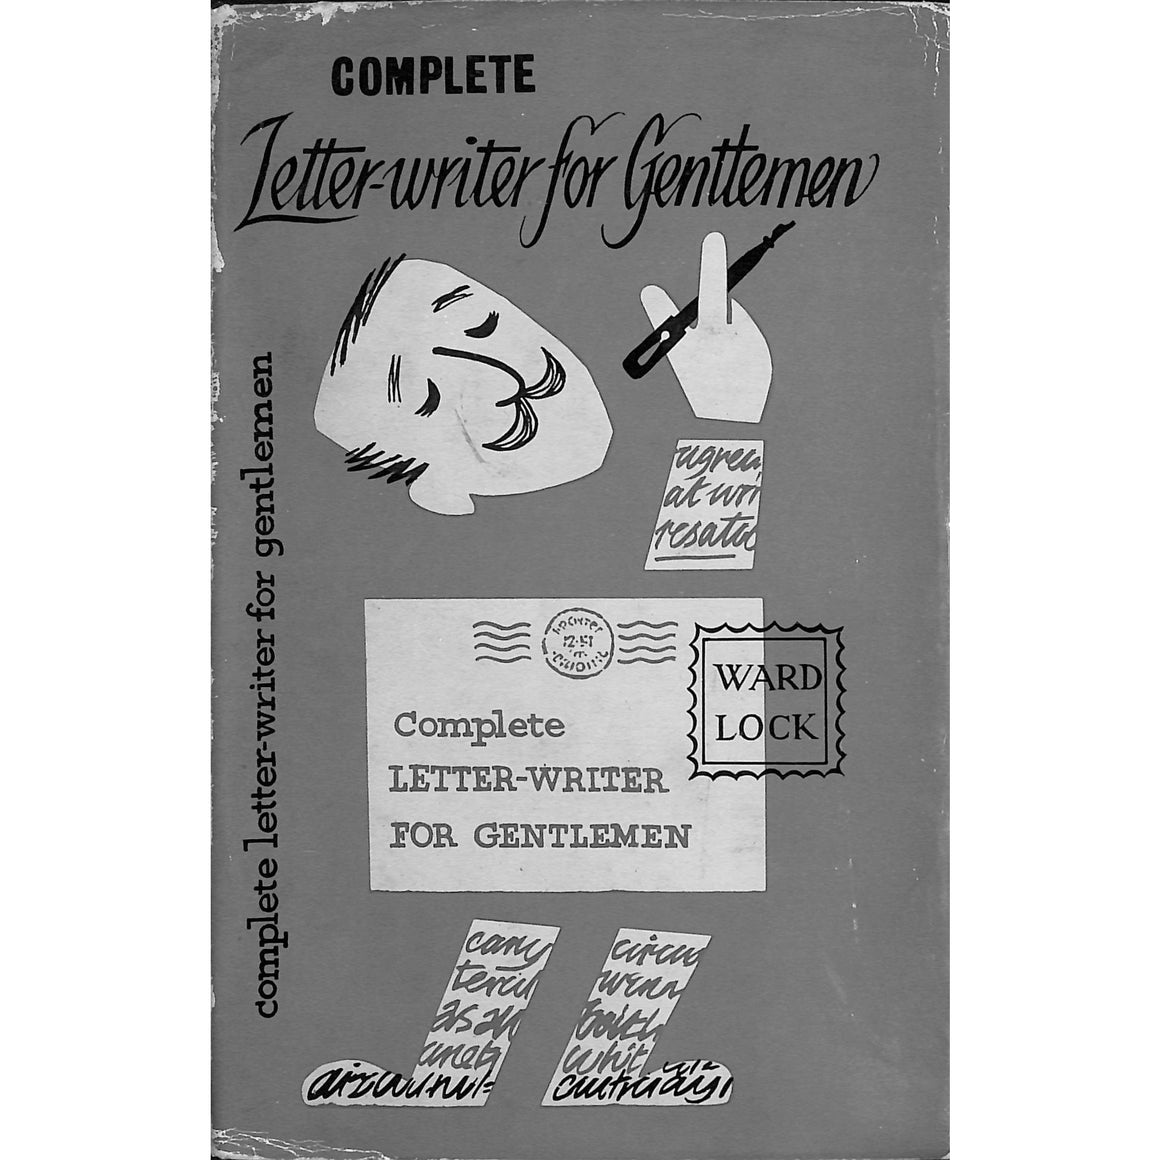 Complete Letter-writer for Gentlemen